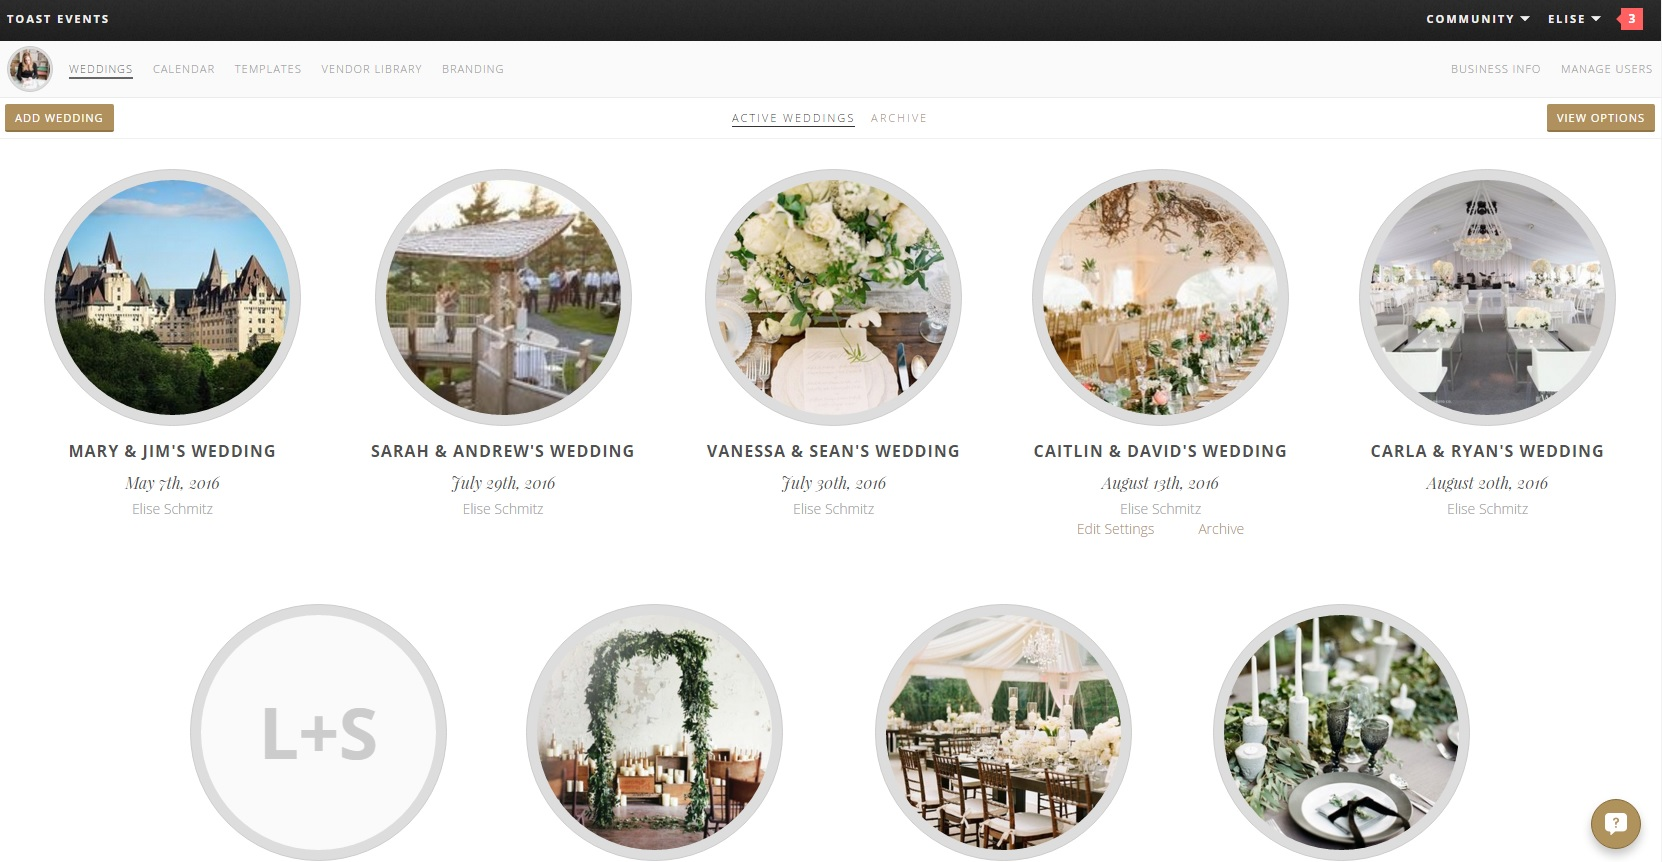 Aisle Planner with Toast Events